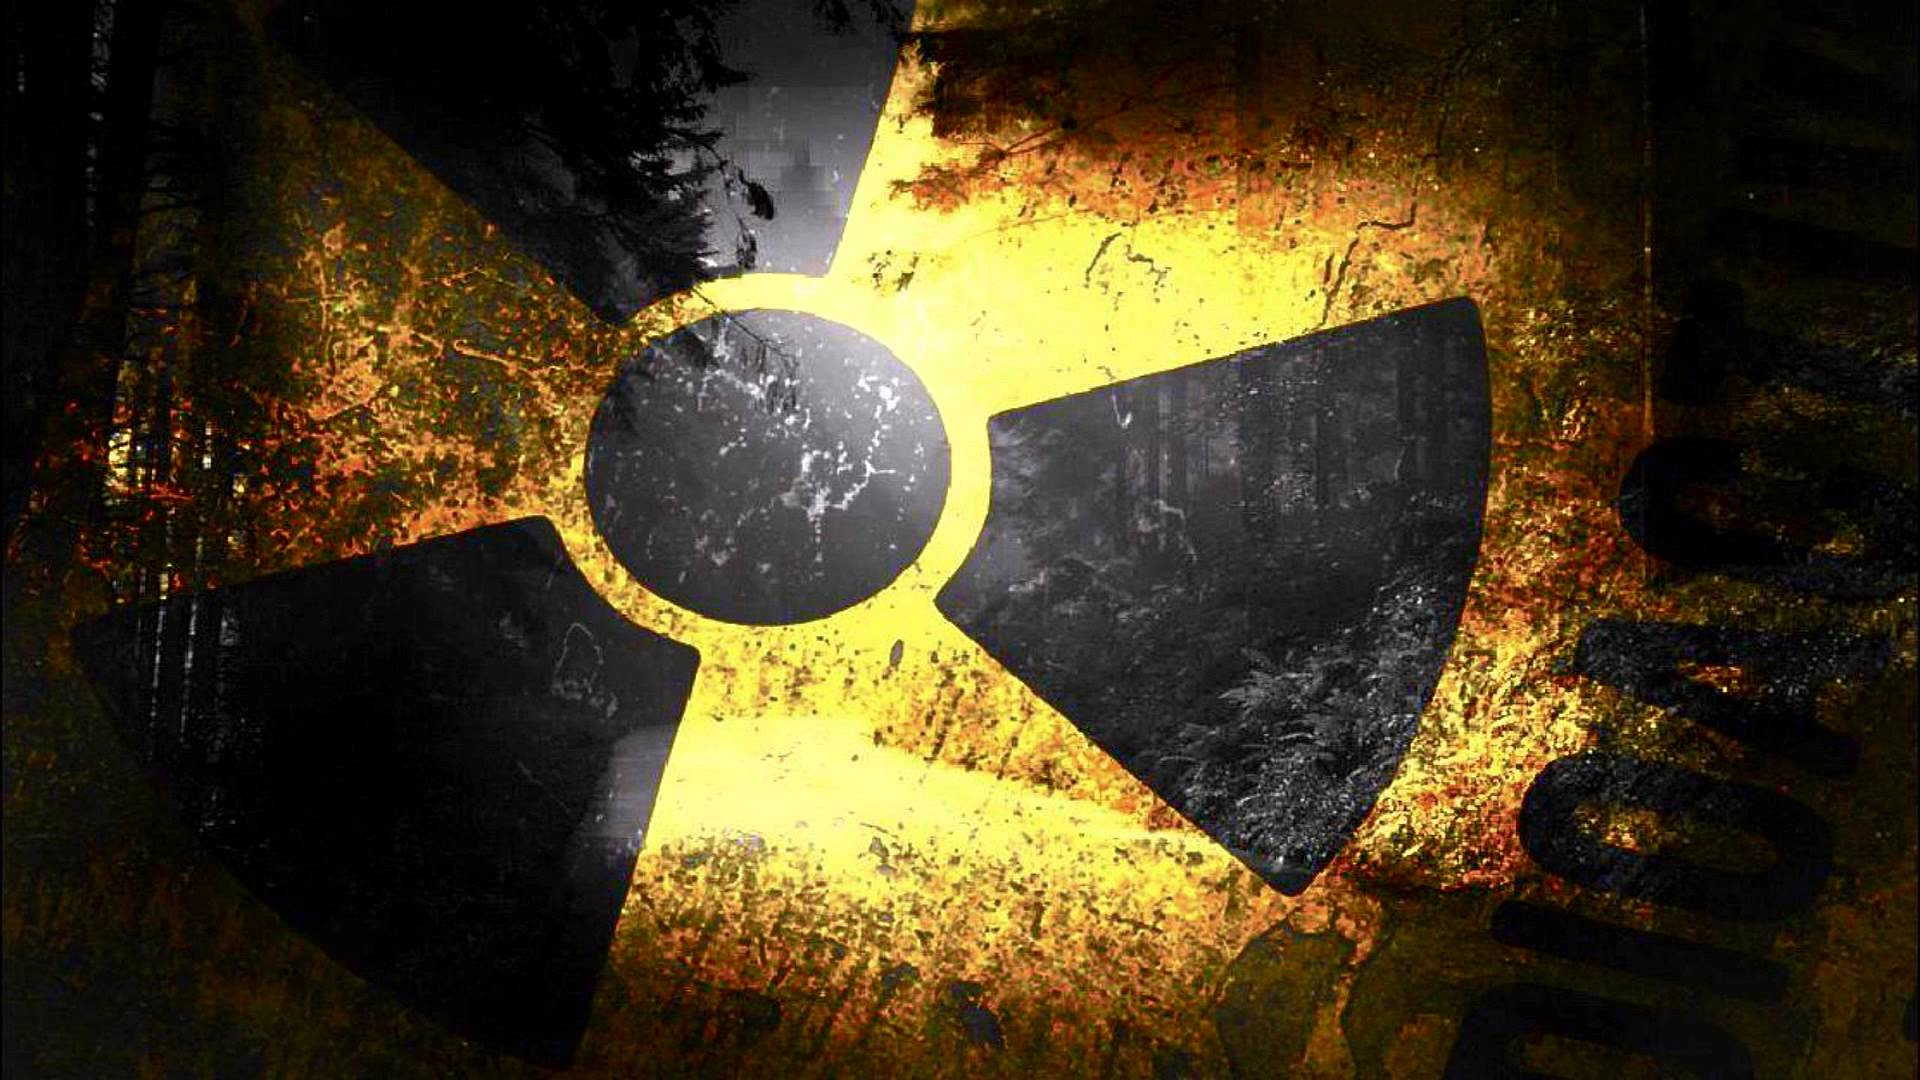 Image For > Nuke Symbol Wallpapers Hd